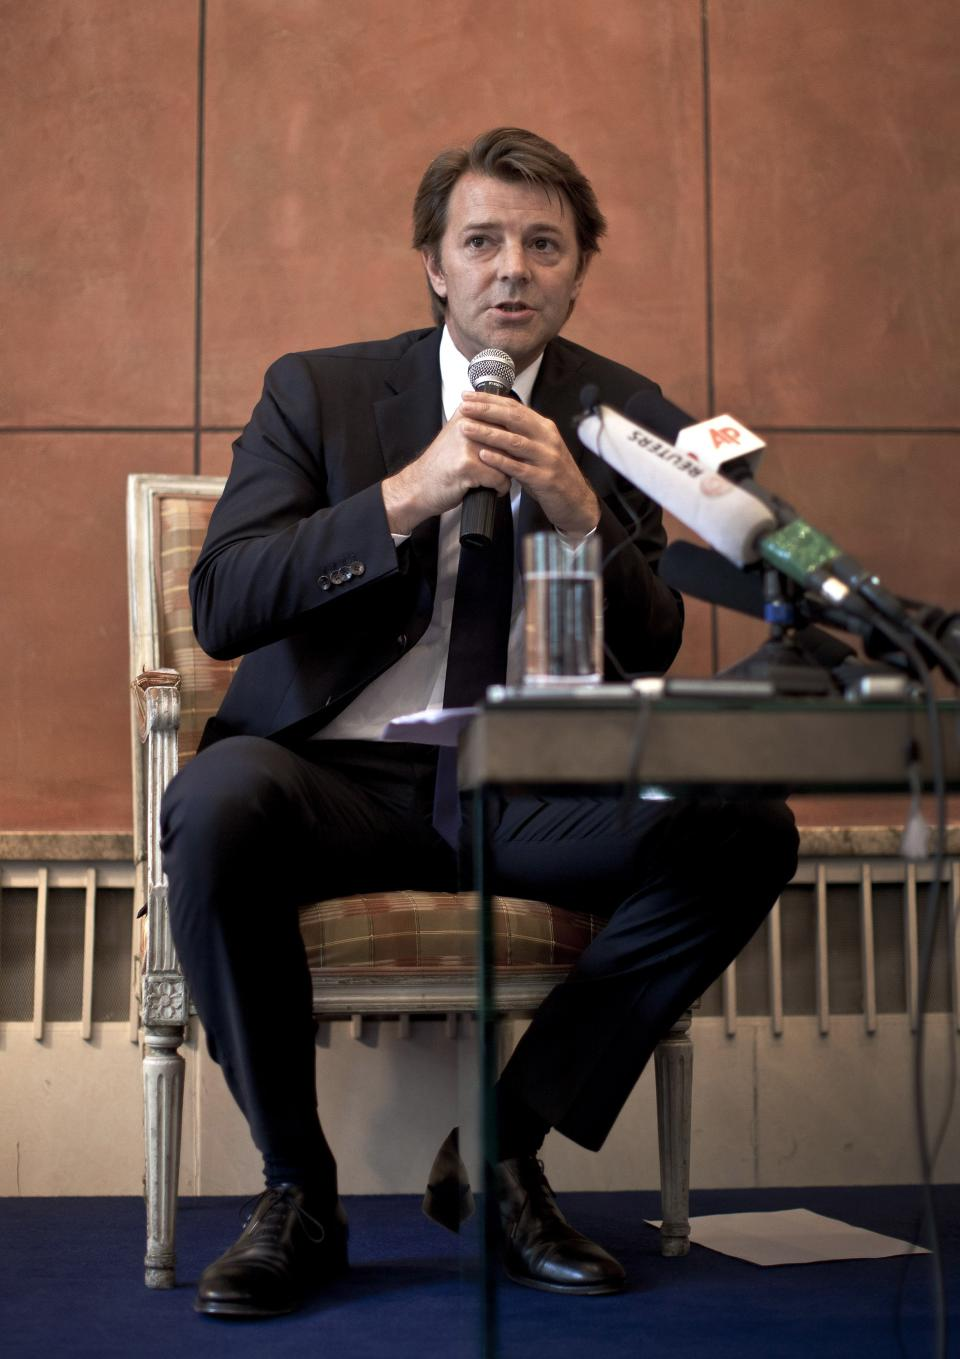 French Economy Minister Francois Baroin speaks during a news conference at the French Embassy in Beijing, China, Friday, Aug. 26, 2011. (AP Photo/Andy Wong)